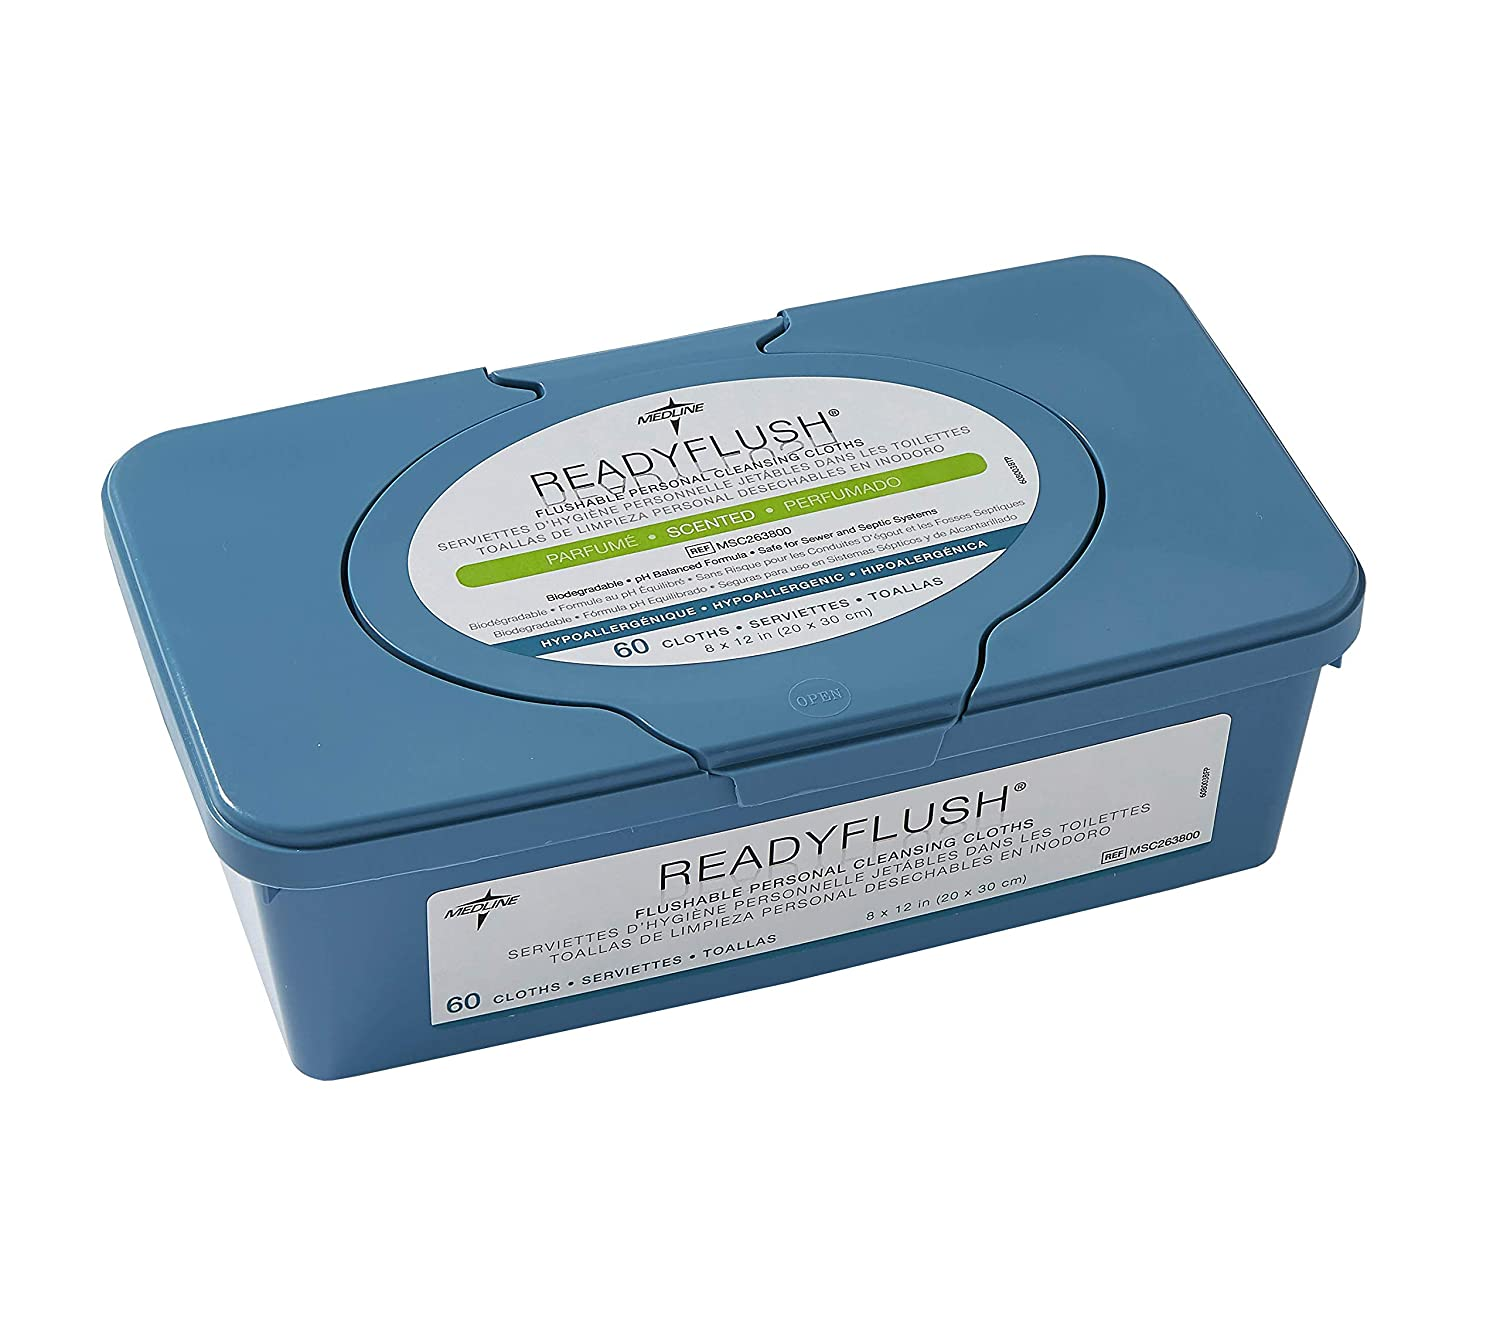 Medline MSC263800H ReadyFlush Large Adult-Sized 8x12 Personal Cleansing Cloths - Tub of 60 Flushable Wipes: Industrial & Scientific